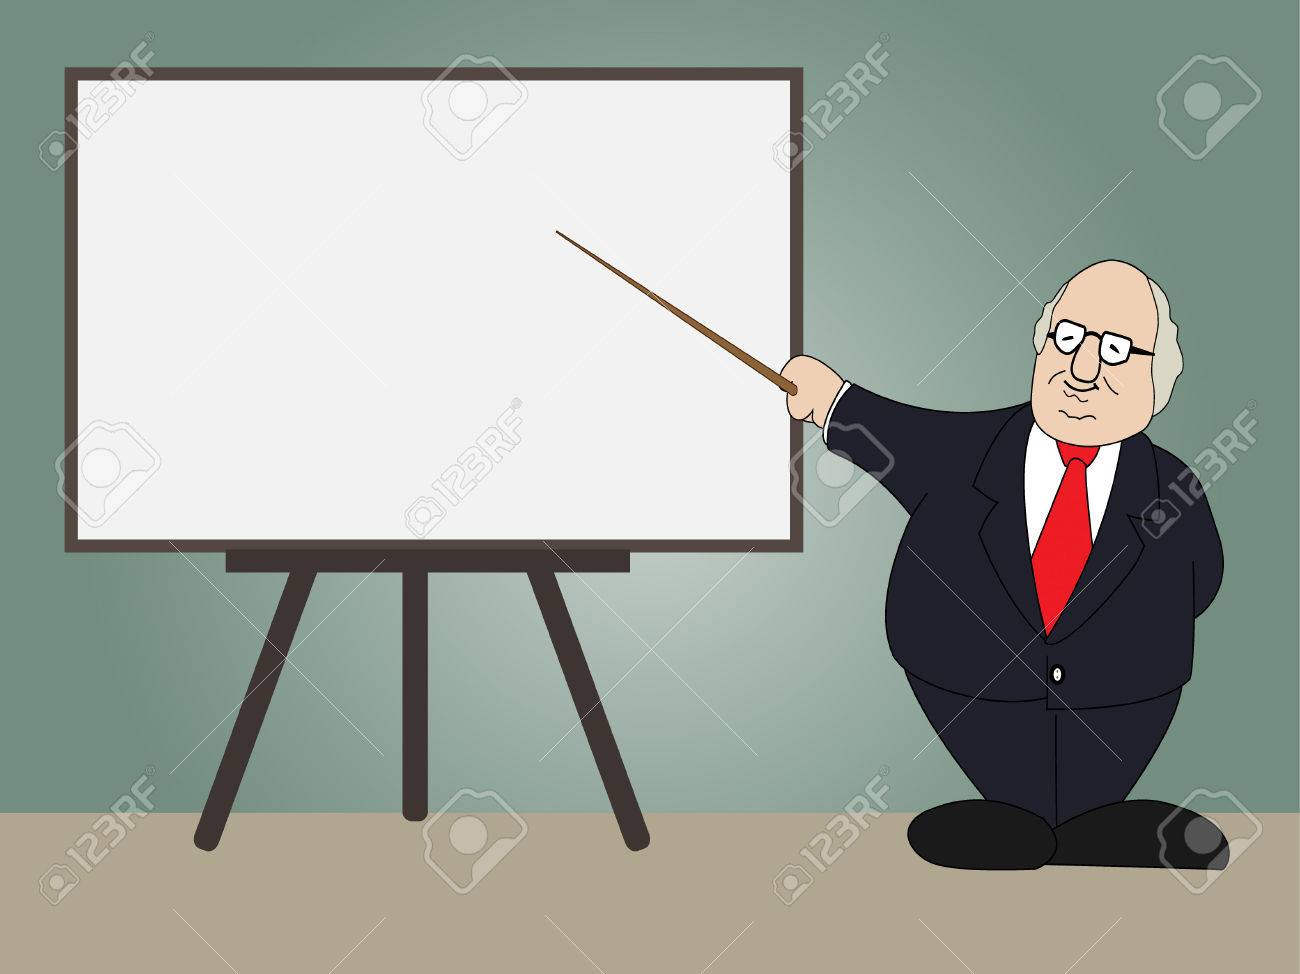 professor presentation on whiteboard in classroom vector